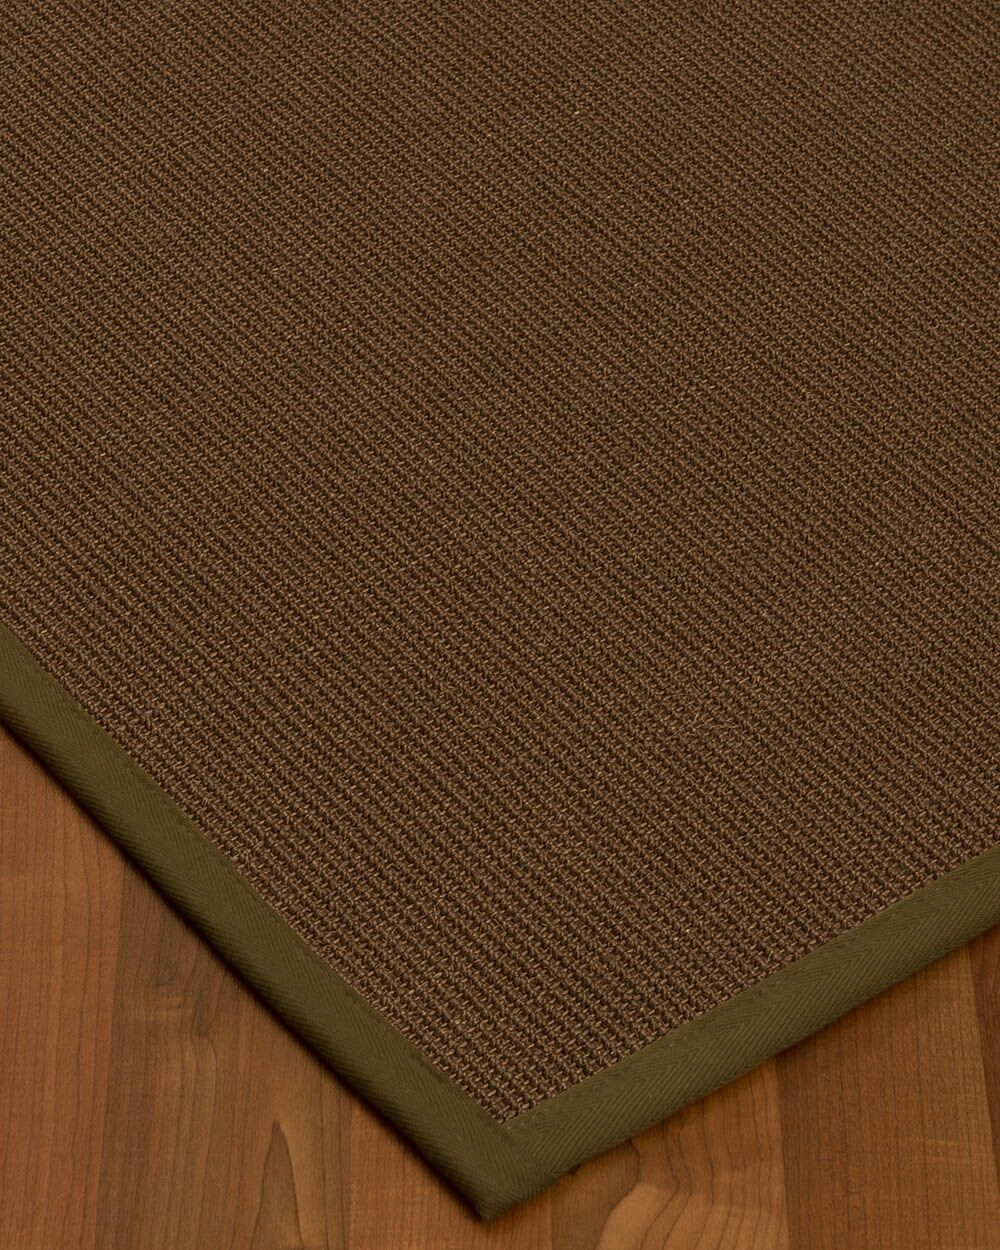 Heider Border Hand-Woven Brown/Malt Area Rug Rug Pad Included: No, Rug Size: Rectangle 3' x 5'